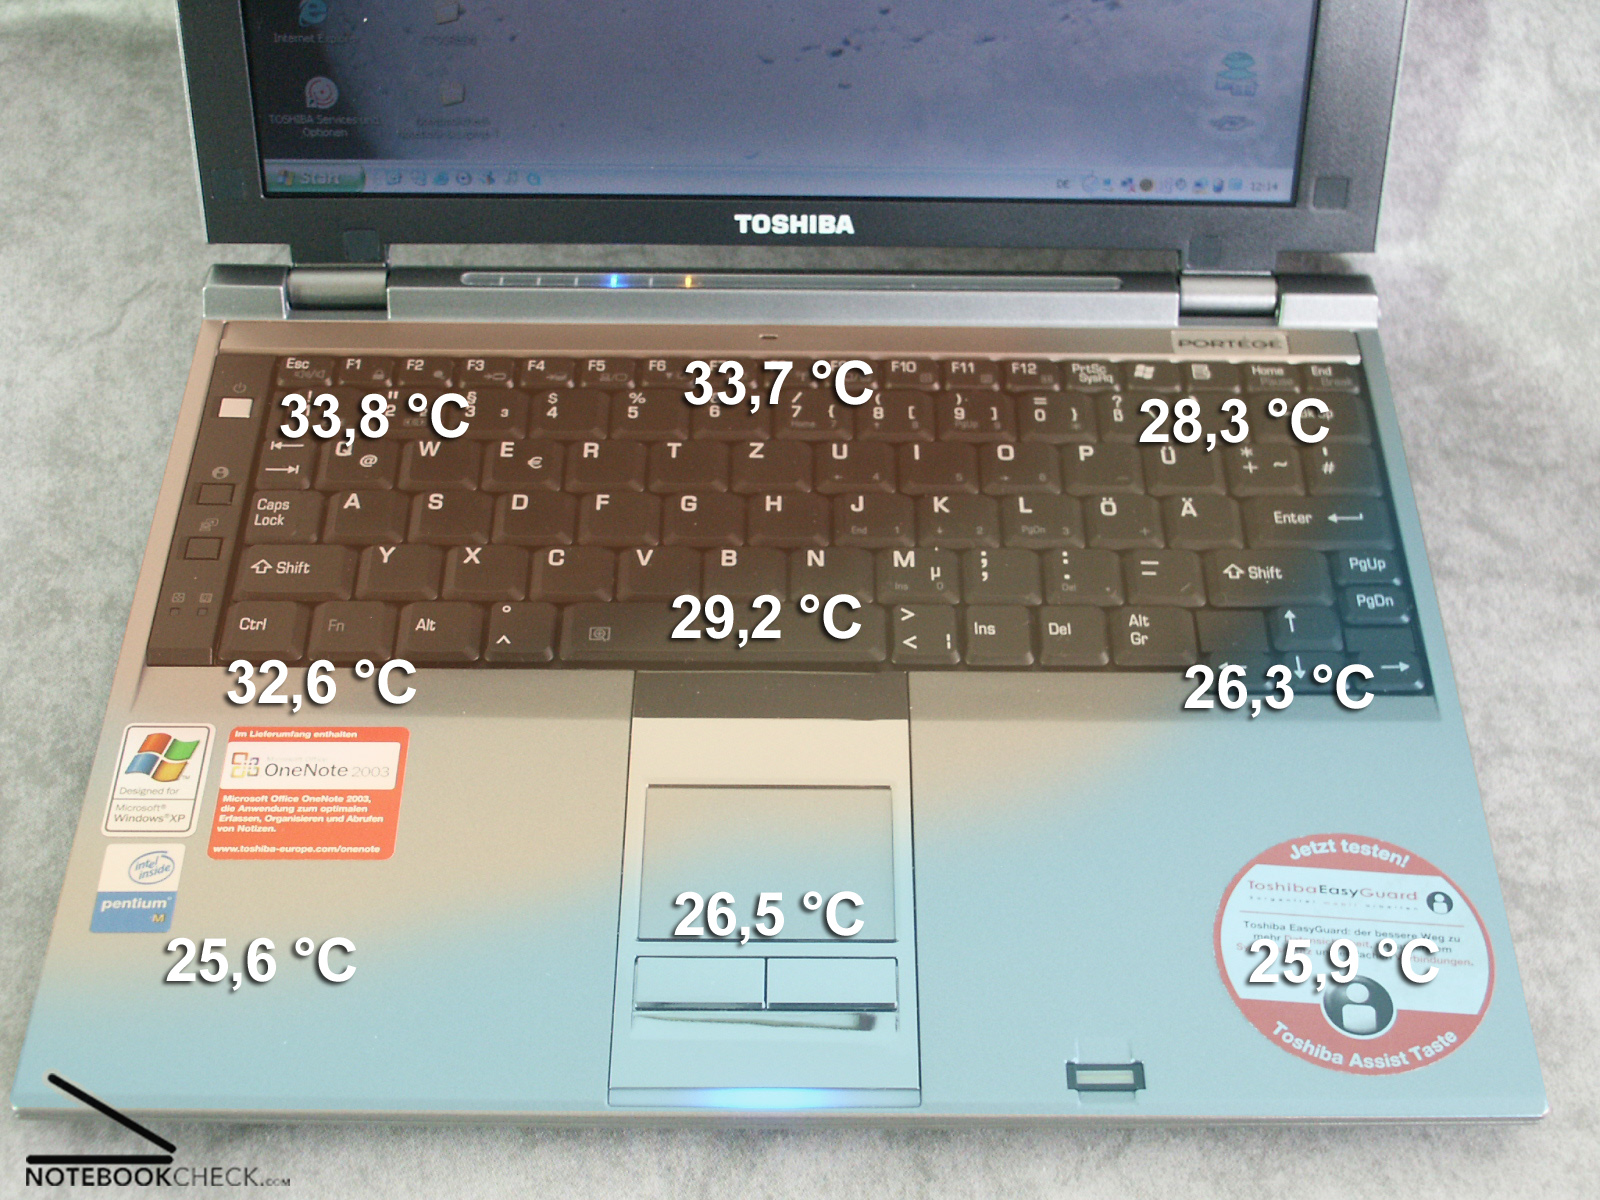 TOSHIBA SATELLITE PRO R200 TOUCHPAD ONOFF WINDOWS 7 X64 DRIVER DOWNLOAD